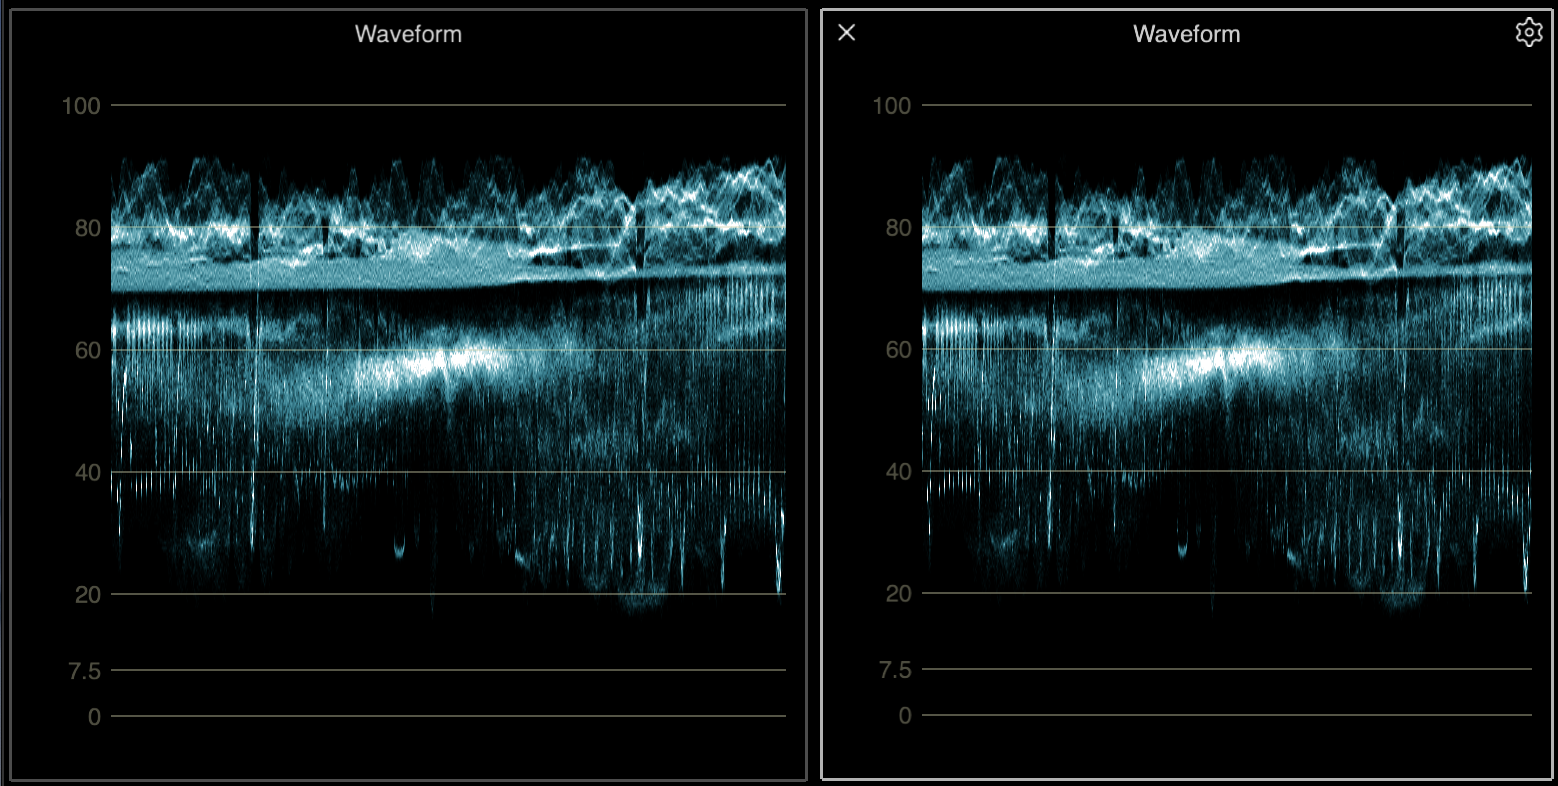 A waveform palette unselected (left) and selected (right)